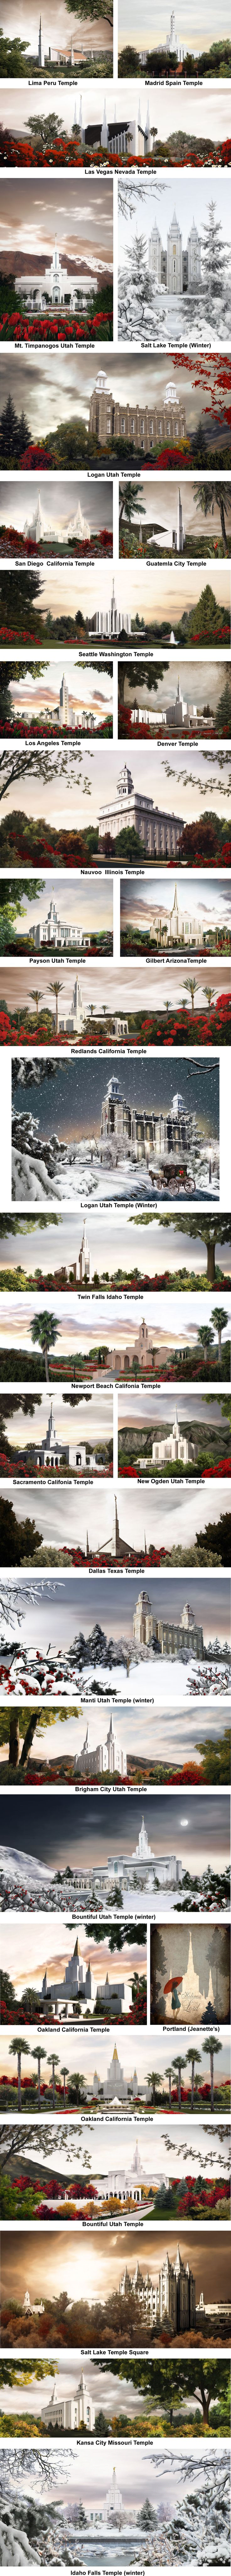 Temple pics by Brent Borrup- Great pics #temples #lds